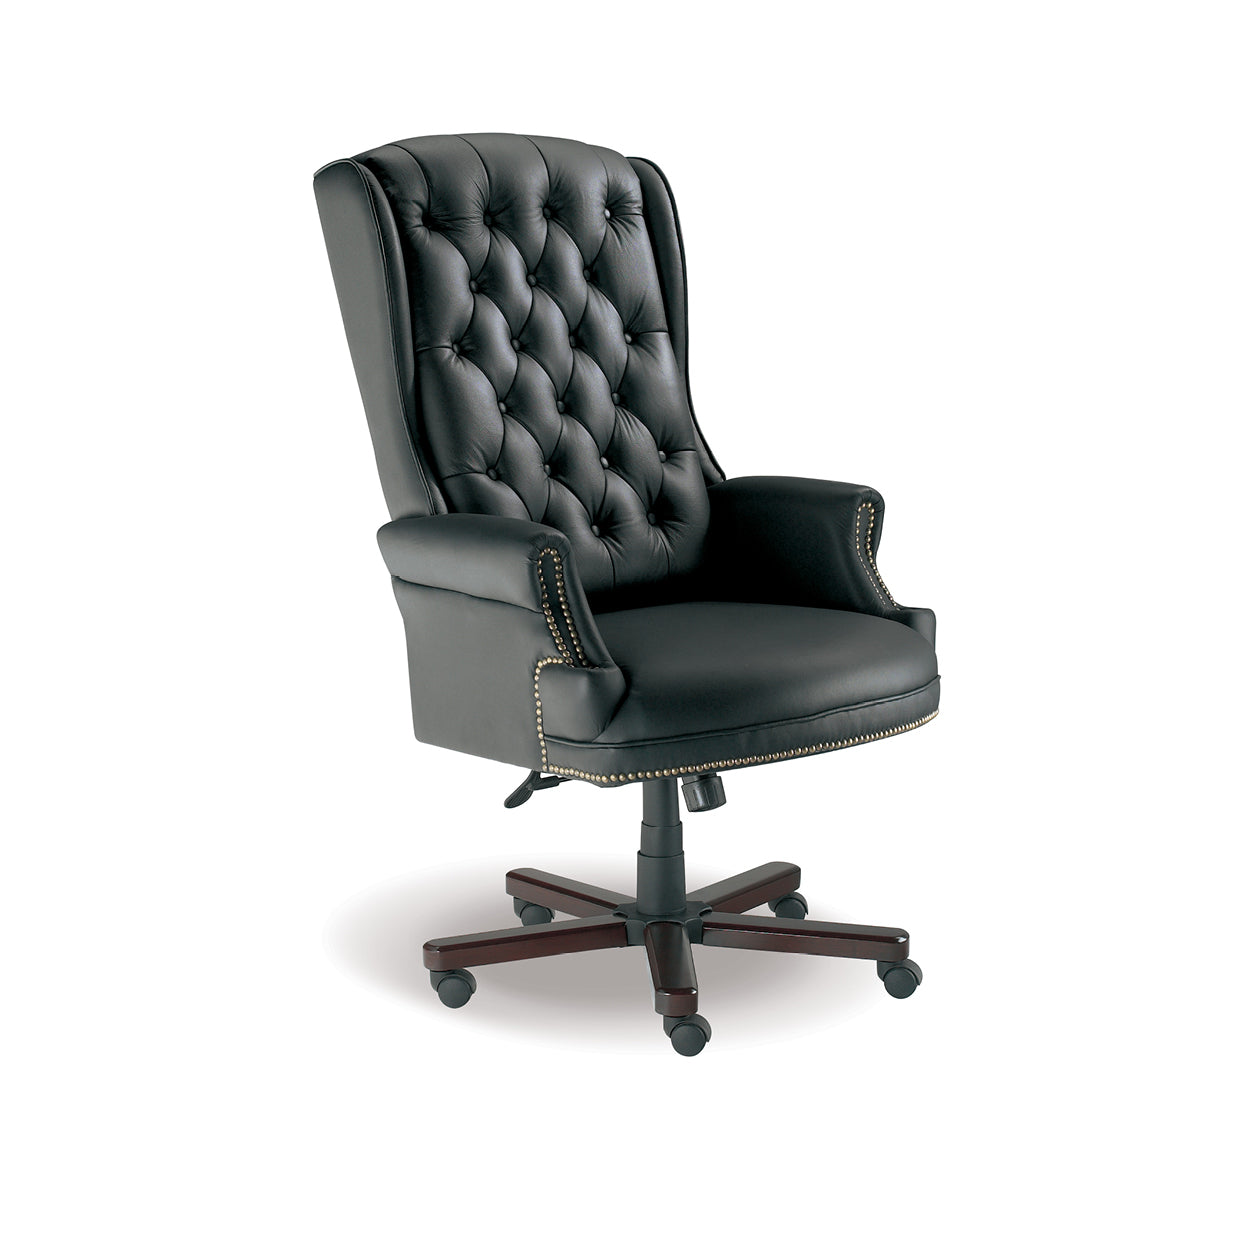 Hedcor Judges High back office chair